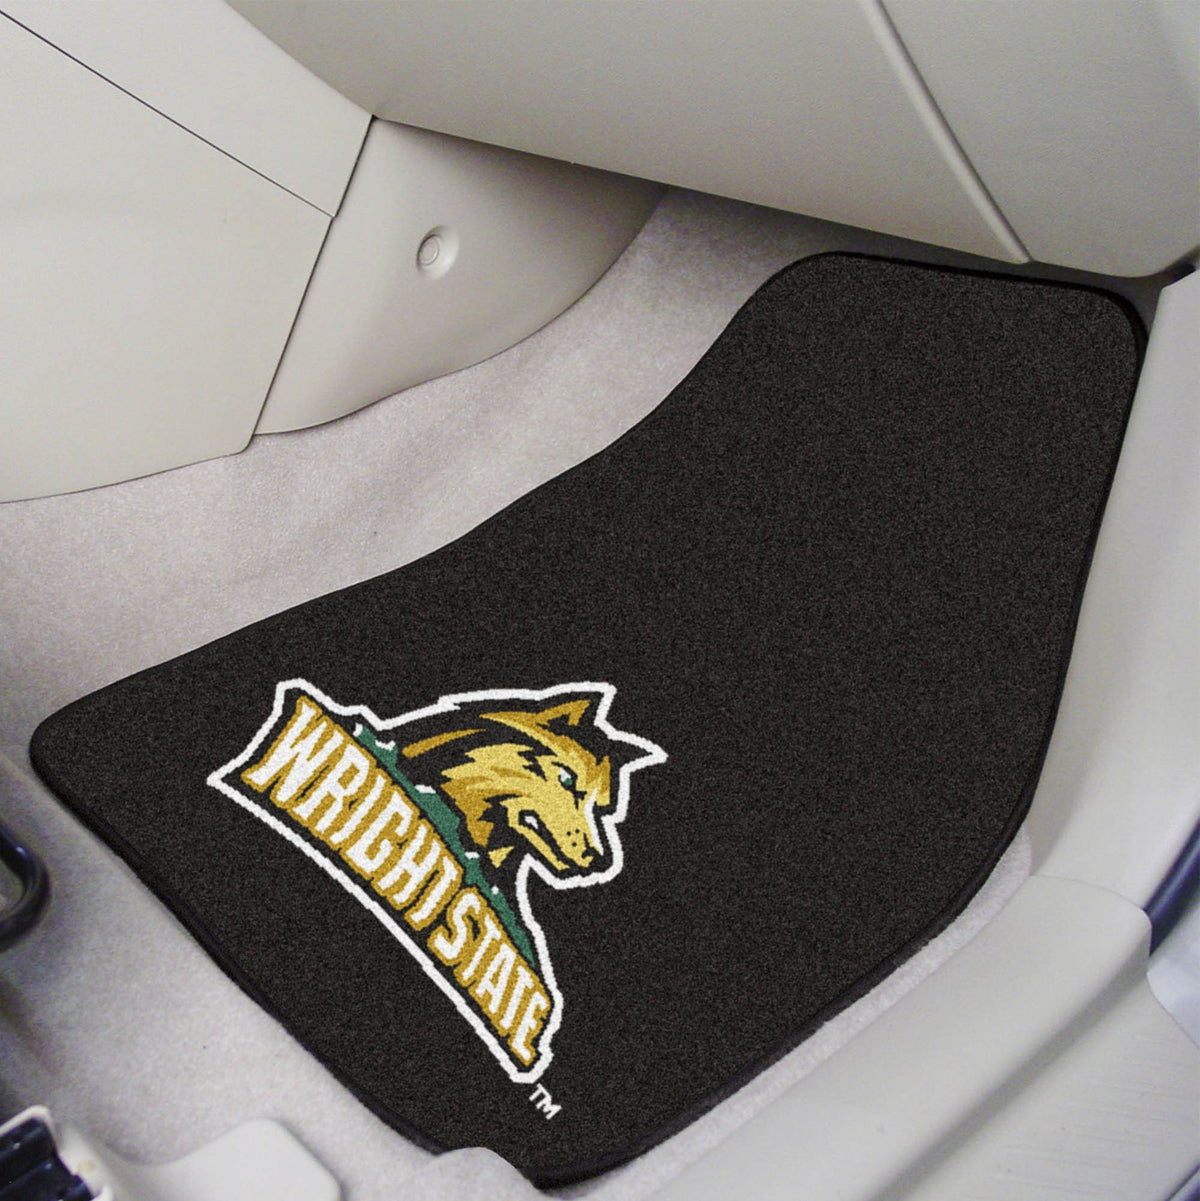 Collegiate - Carpet Car Mat, 2-Piece Set: T - Z Collegiate Car Mat, Front Car Mats, 2-pc Carpet Car Mat Set, Collegiate, Auto Fan Mats Wright State